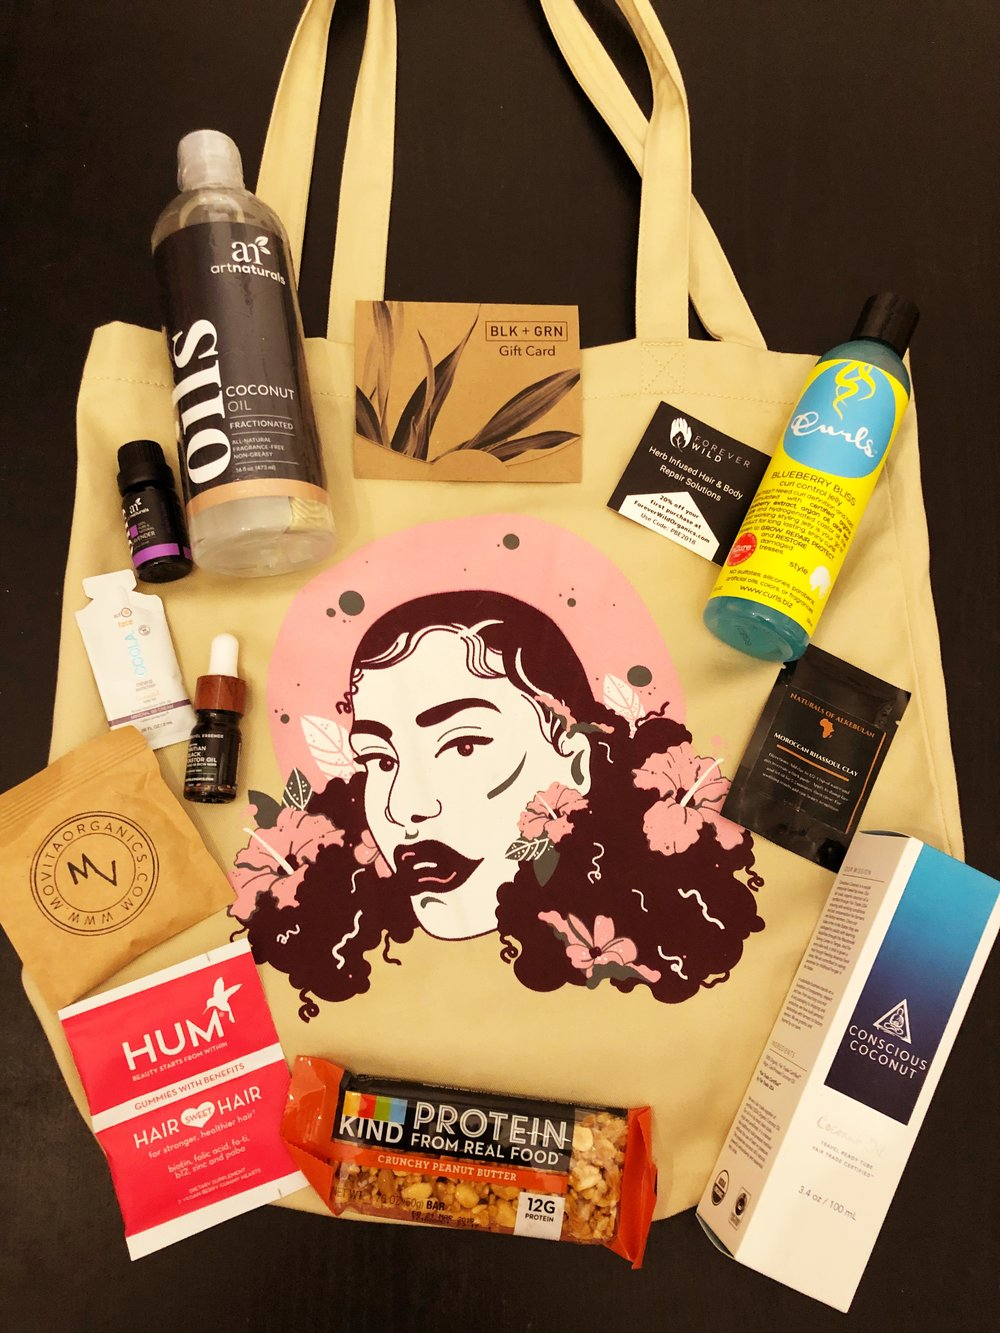 The gift bag was BOMB, thank you so much:  KIND PROTEIN BAR ,  HUM ,  CURLS ,  CONSCIOUS COCONUT ,  FOREVER WILD ORGANICS ,  KREYOL ESSENCE ,  ART NATURALS ,  COOLA ,  NATURALS OF ALKEBULAN ,  BLK _ GRN GIFT CARD ,  MOVITA